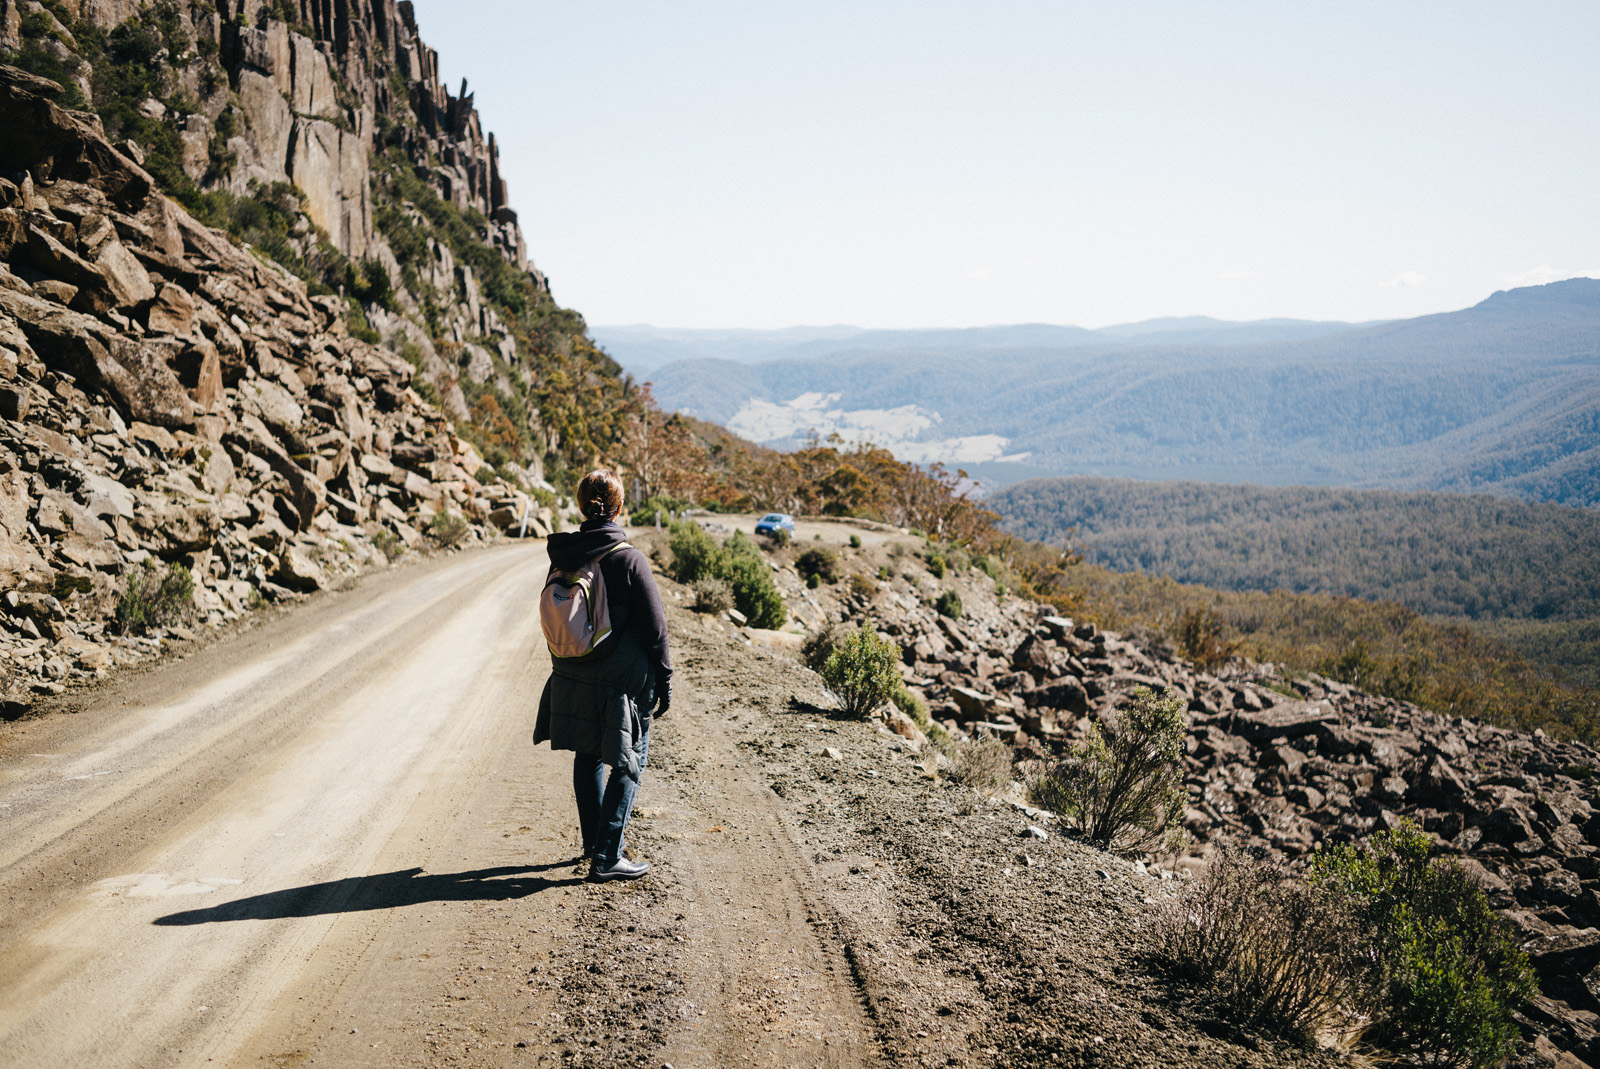 20150910_TasmaniaRoadtrip_113806-Nick-Bedford,-Photographer-Australia, Ben Lomond, Jacob's Ladder, Leica M Typ 240, Road Trip, Summarit 35mm, Tasmania, Travel, VSCO Film.jpg